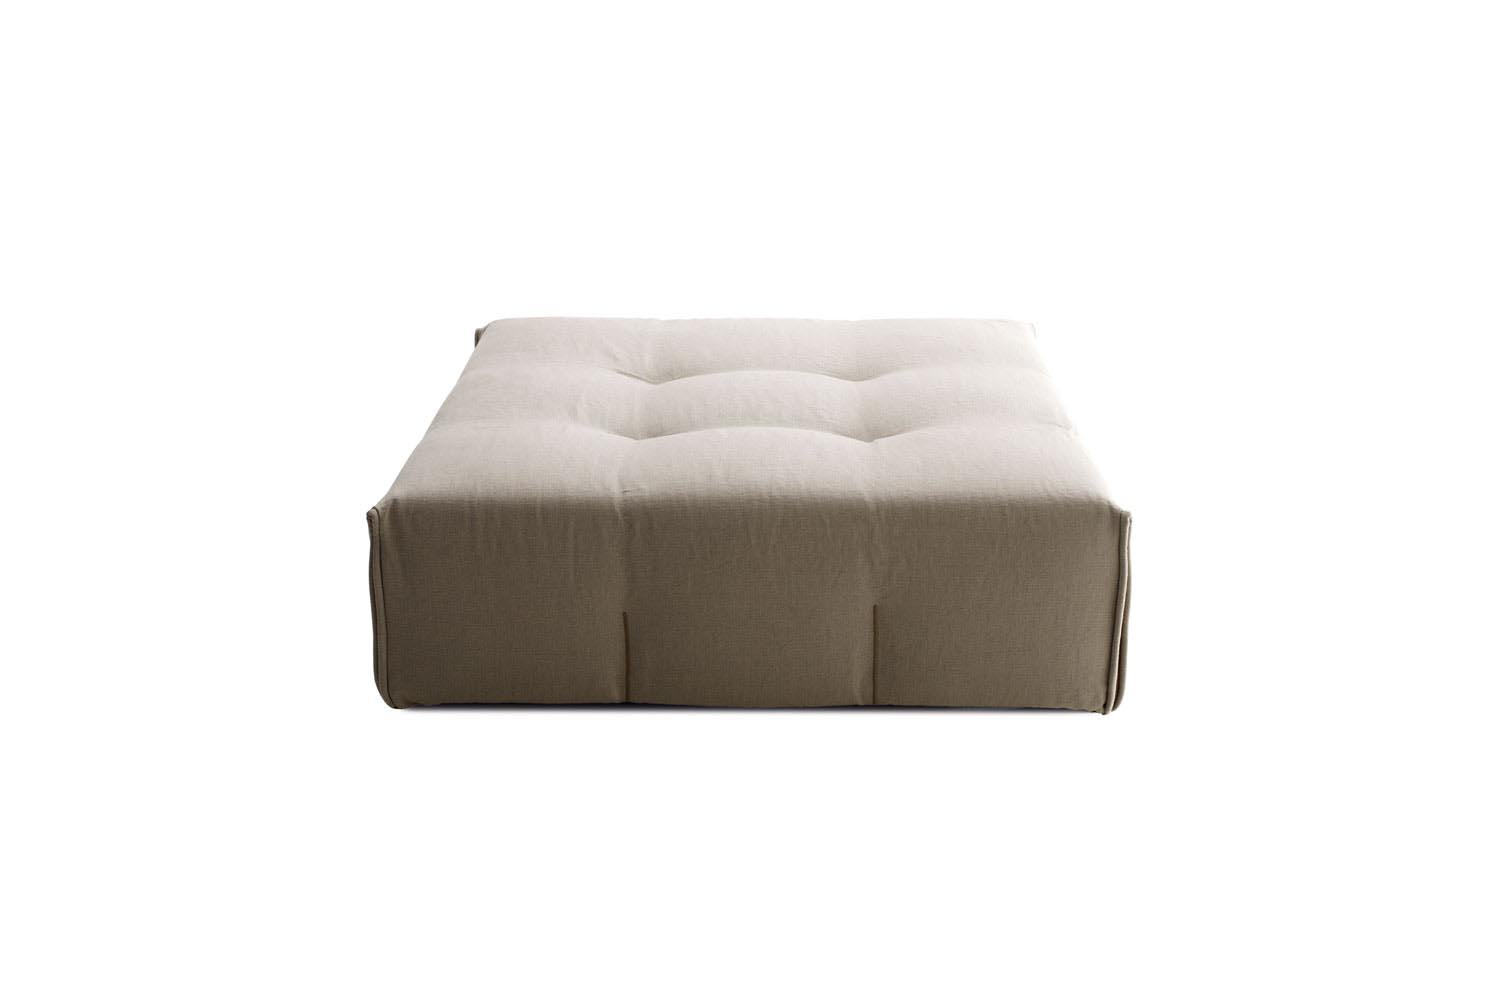 tufty time sofa replica australia coaster bed collection too by patricia urquiola for b andb italia space